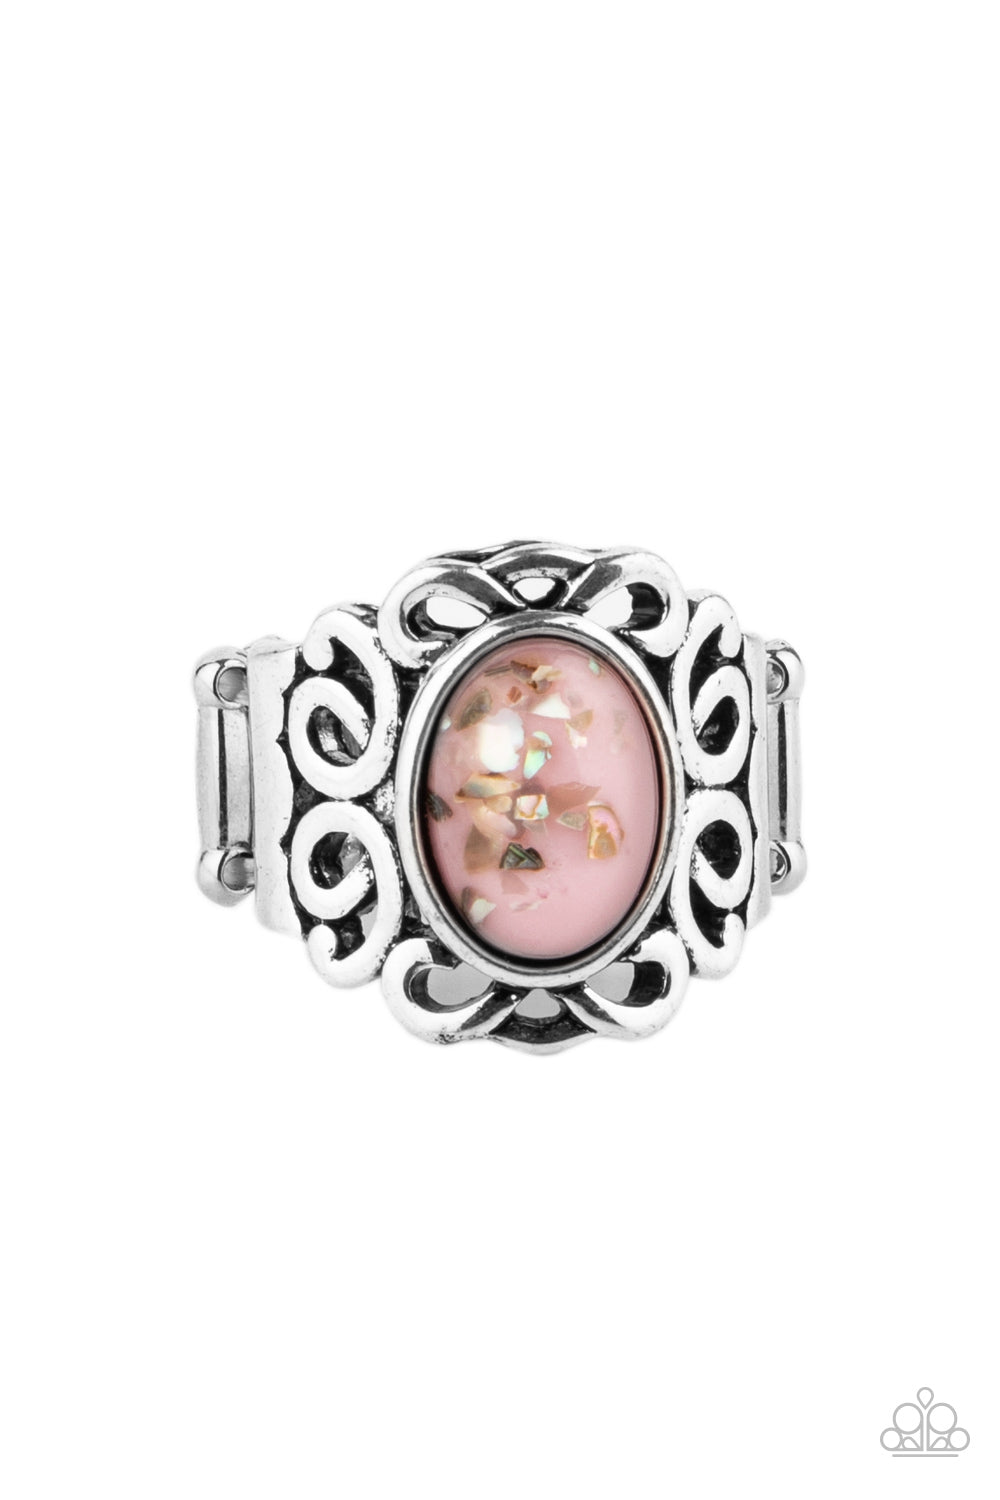 Paparazzi Ring ~ Straight to the POP! - Pink